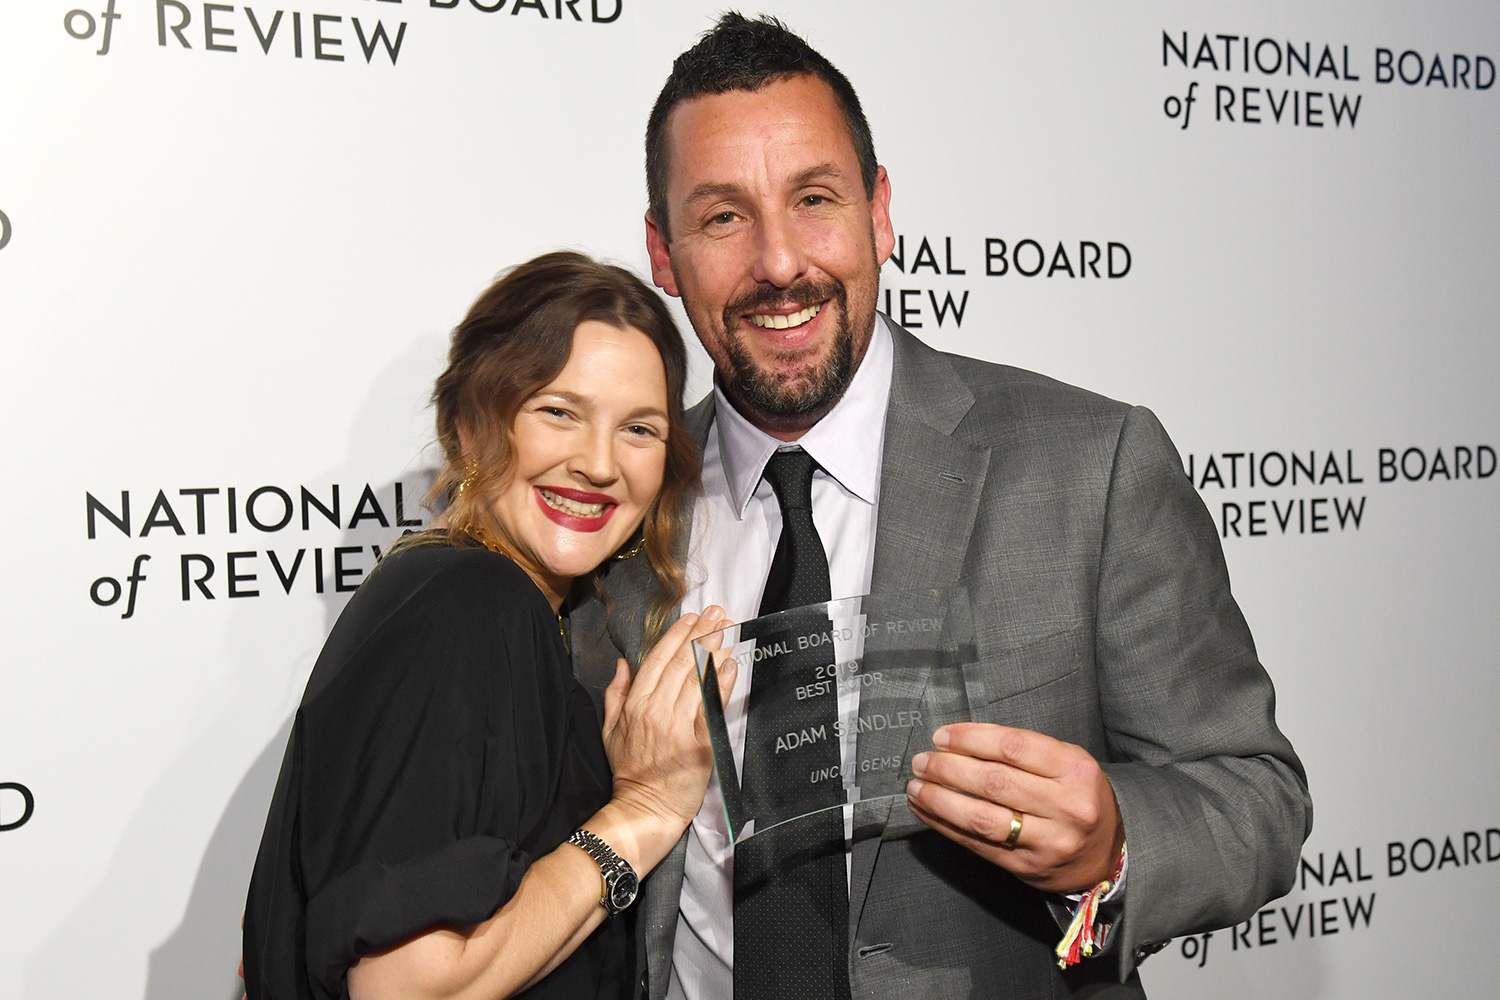 Drew Barrymore and Adam Sandler attend The National Board of Review Annual Awards Gala at Cipriani 42nd Street on January 08, 2020 in New York City